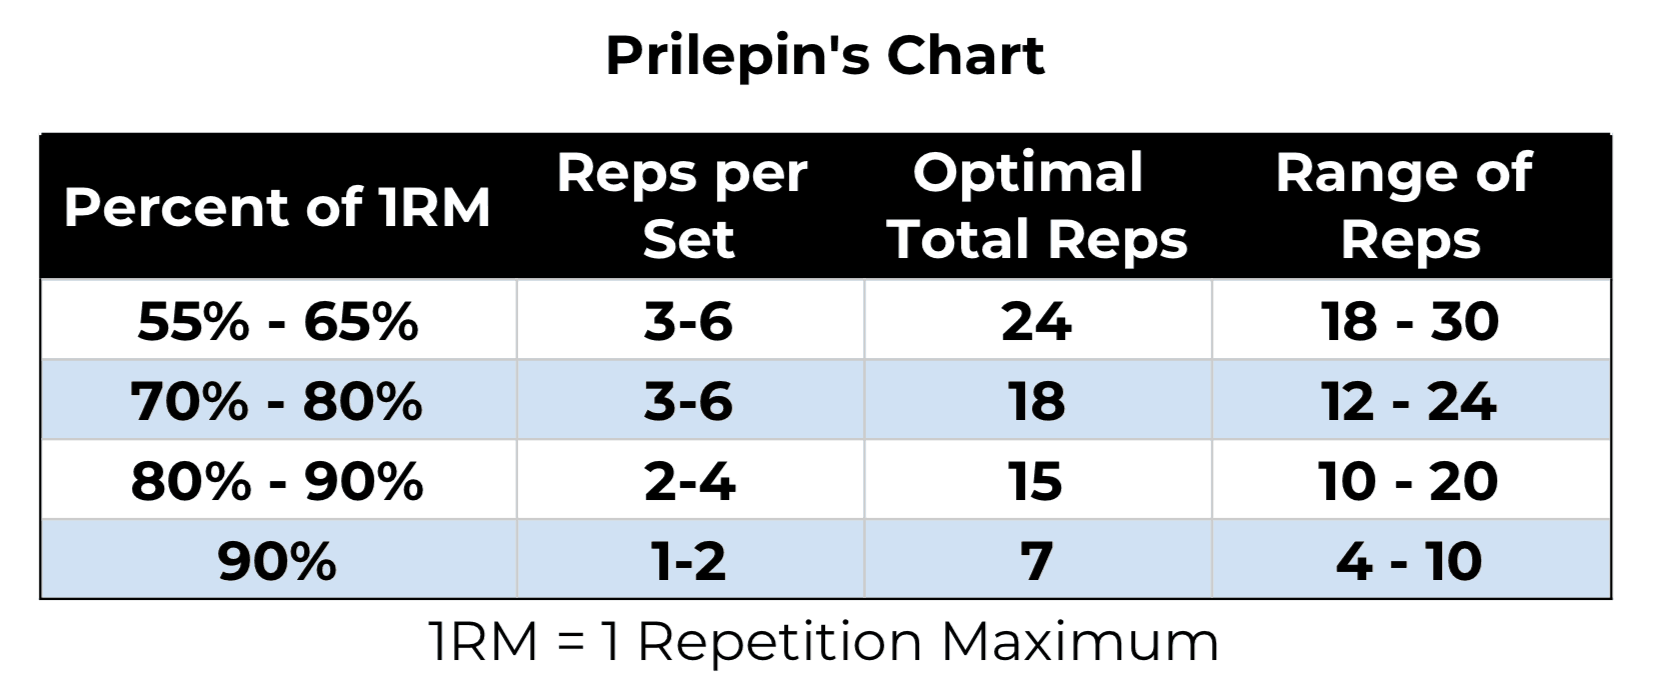 Prilepin S Chart Explained How To Use For Gains In 2019